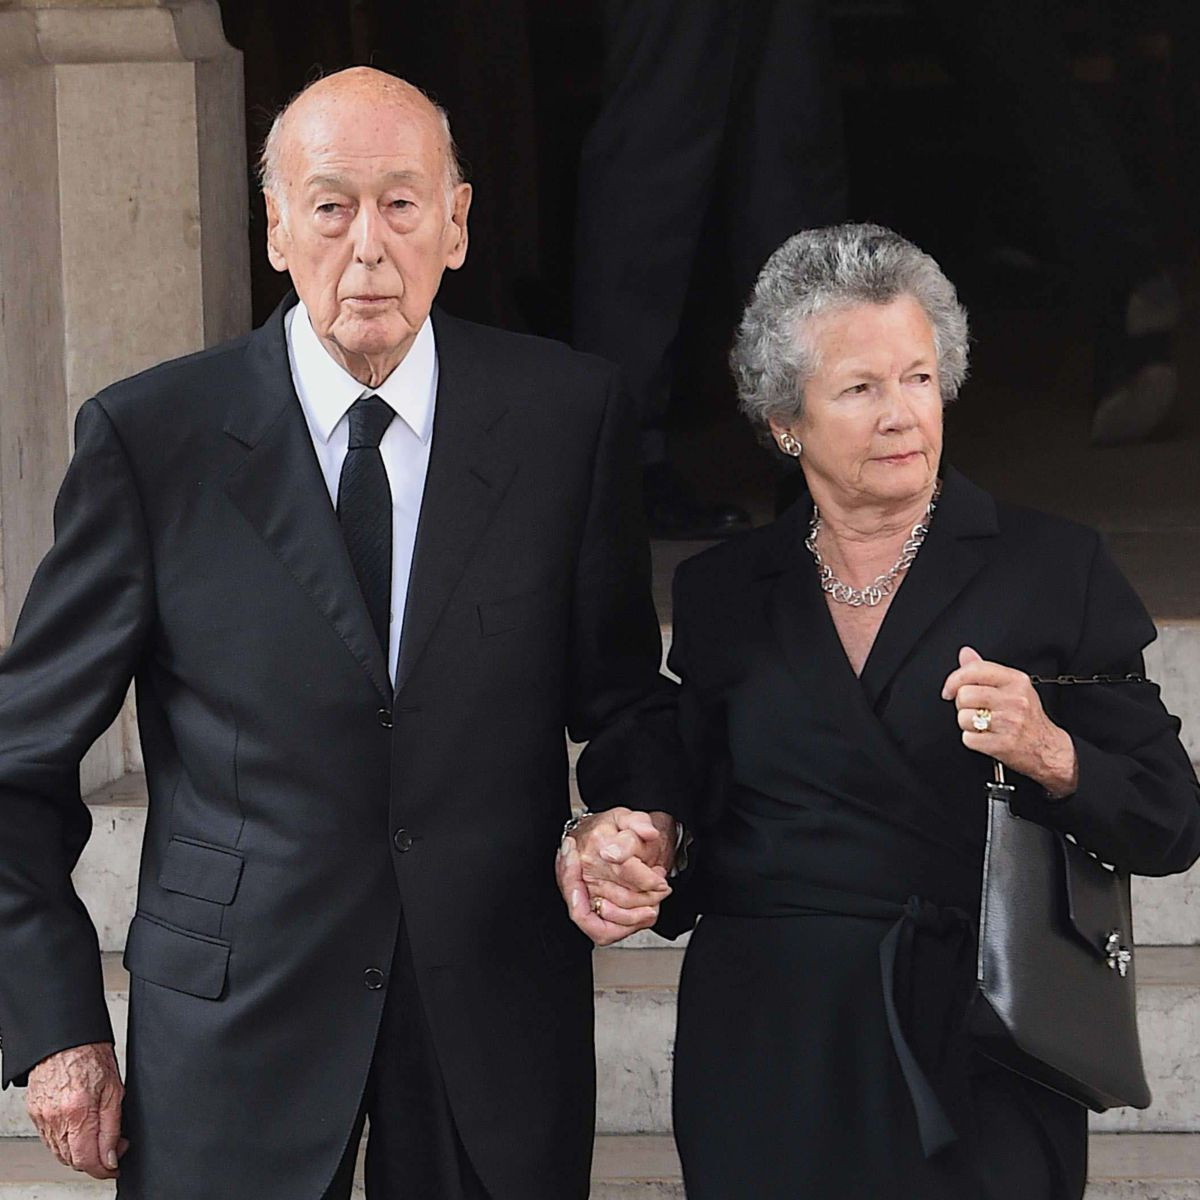 valery-giscard-d-estaing-l-ancien-president-de-la-republique-est-decede